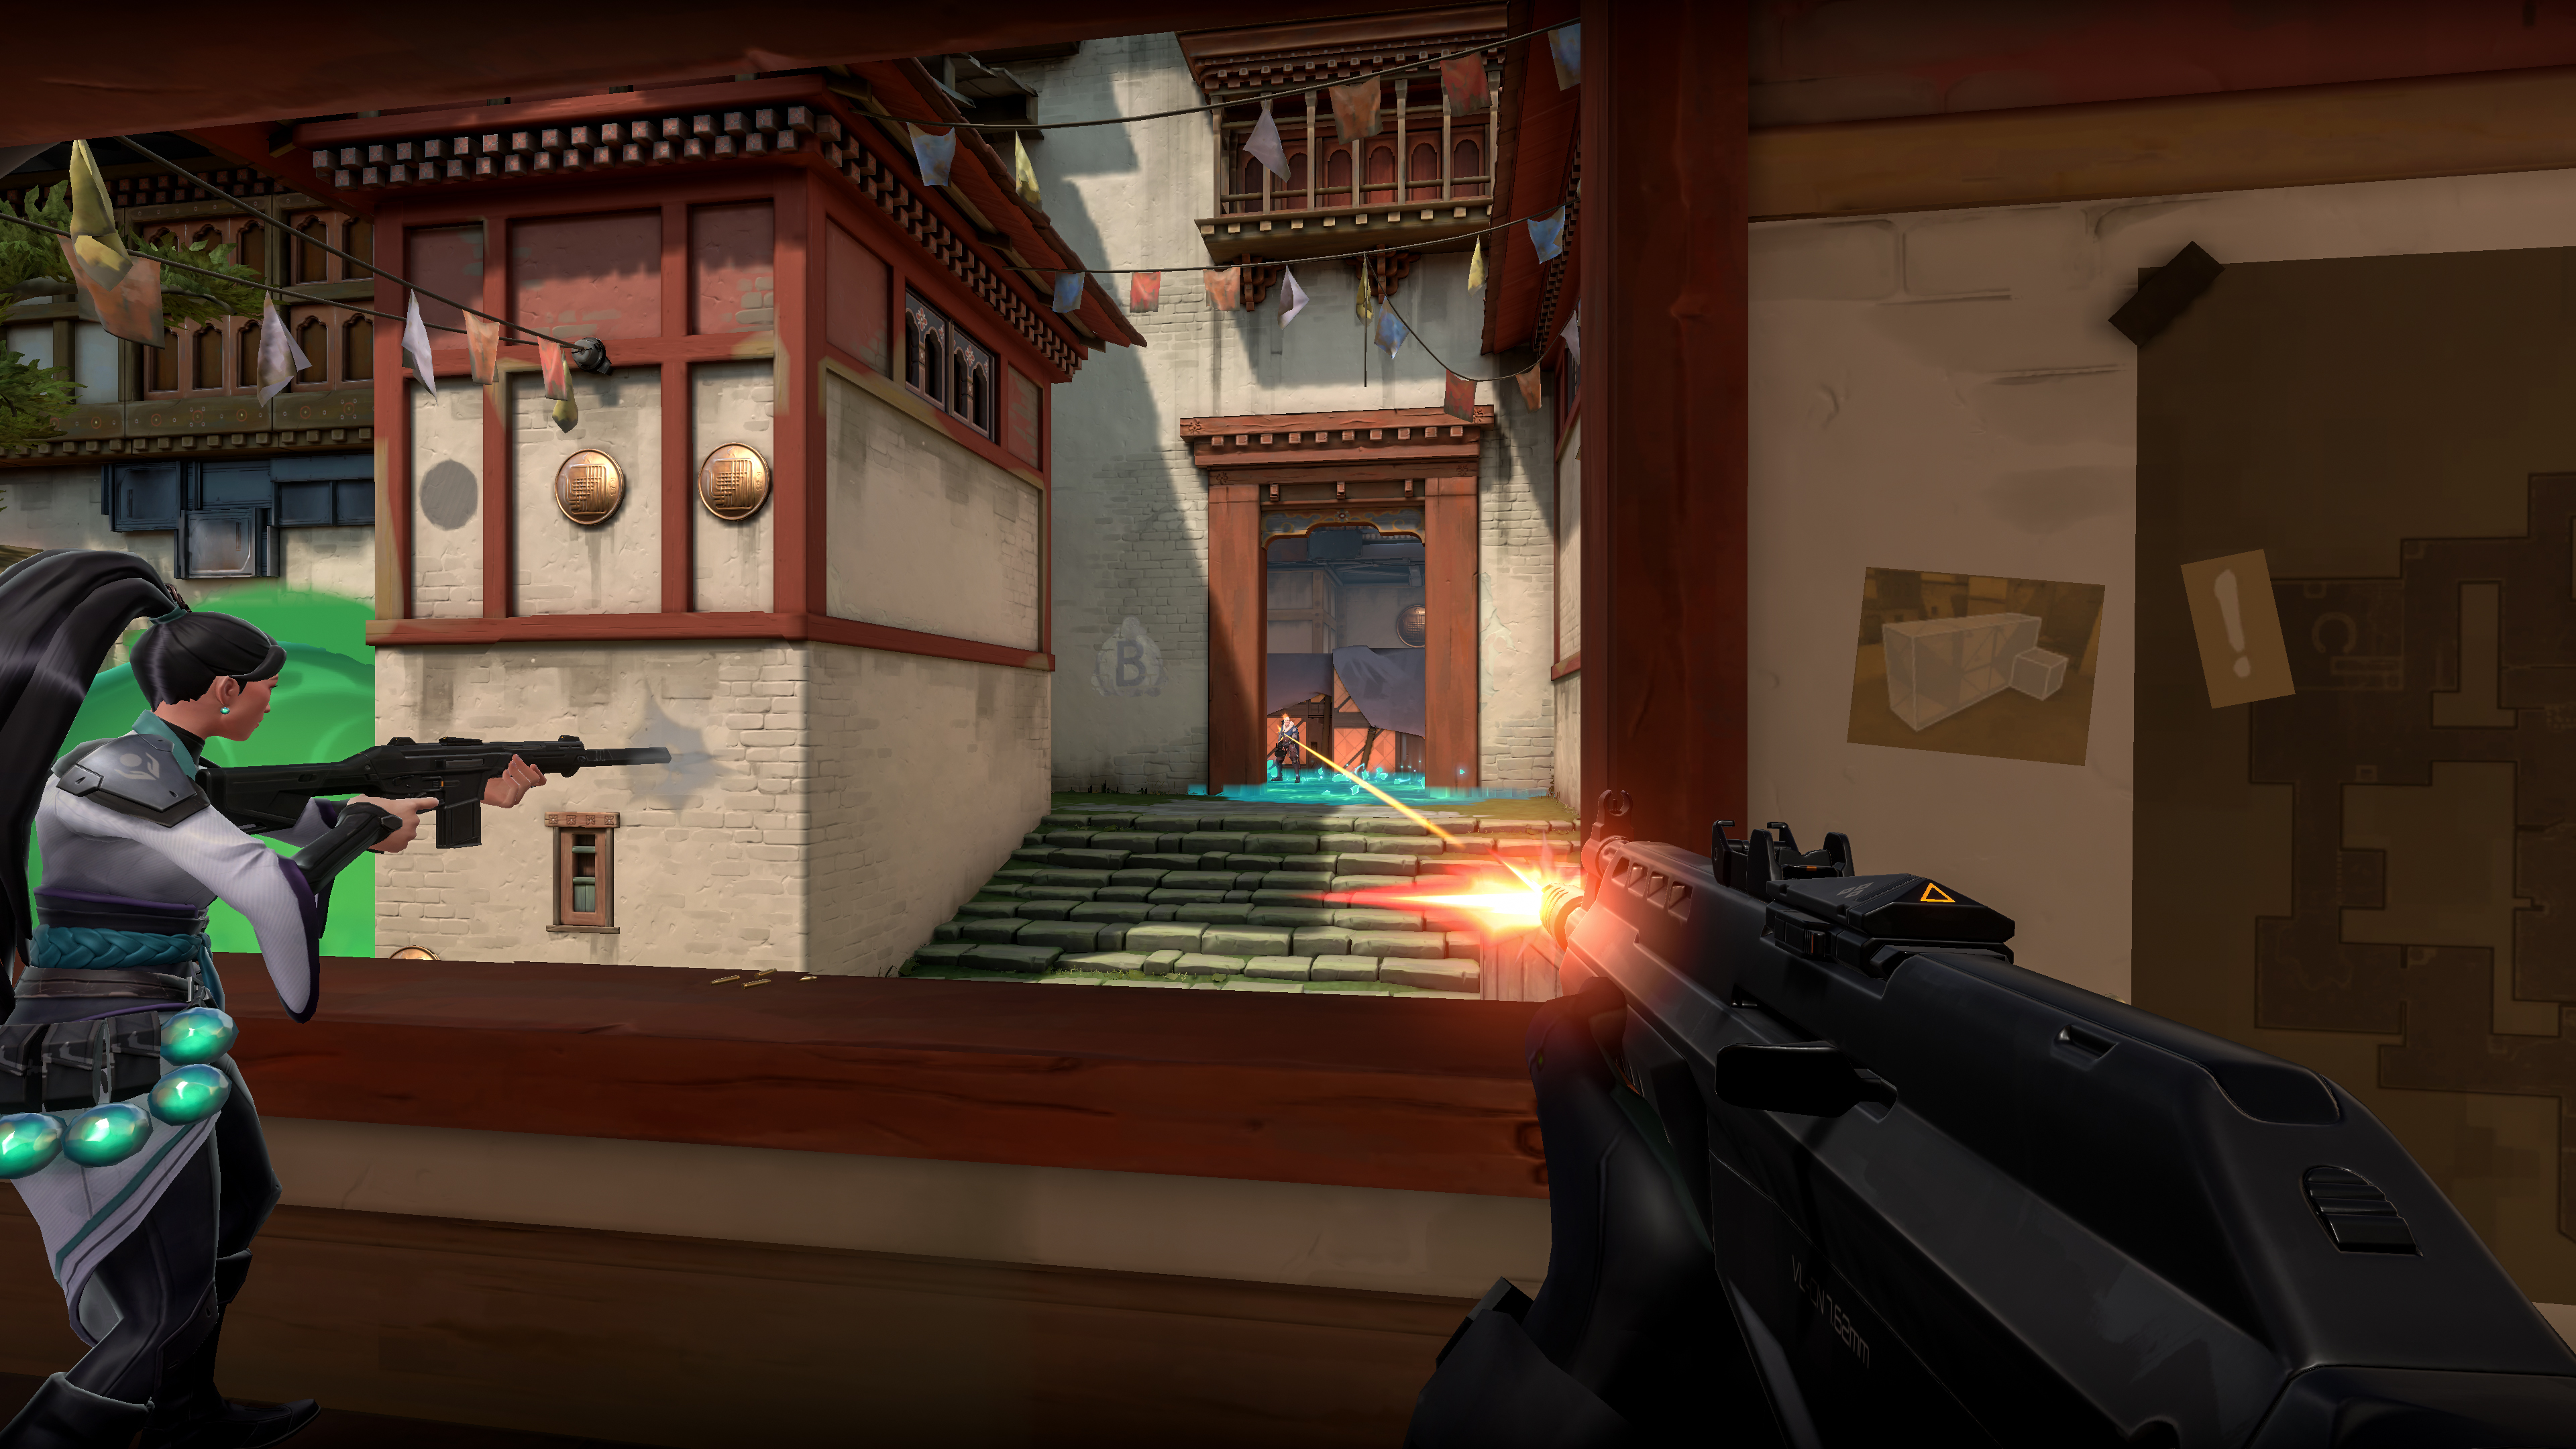 3 players shooting at each other around a window location in Valorant